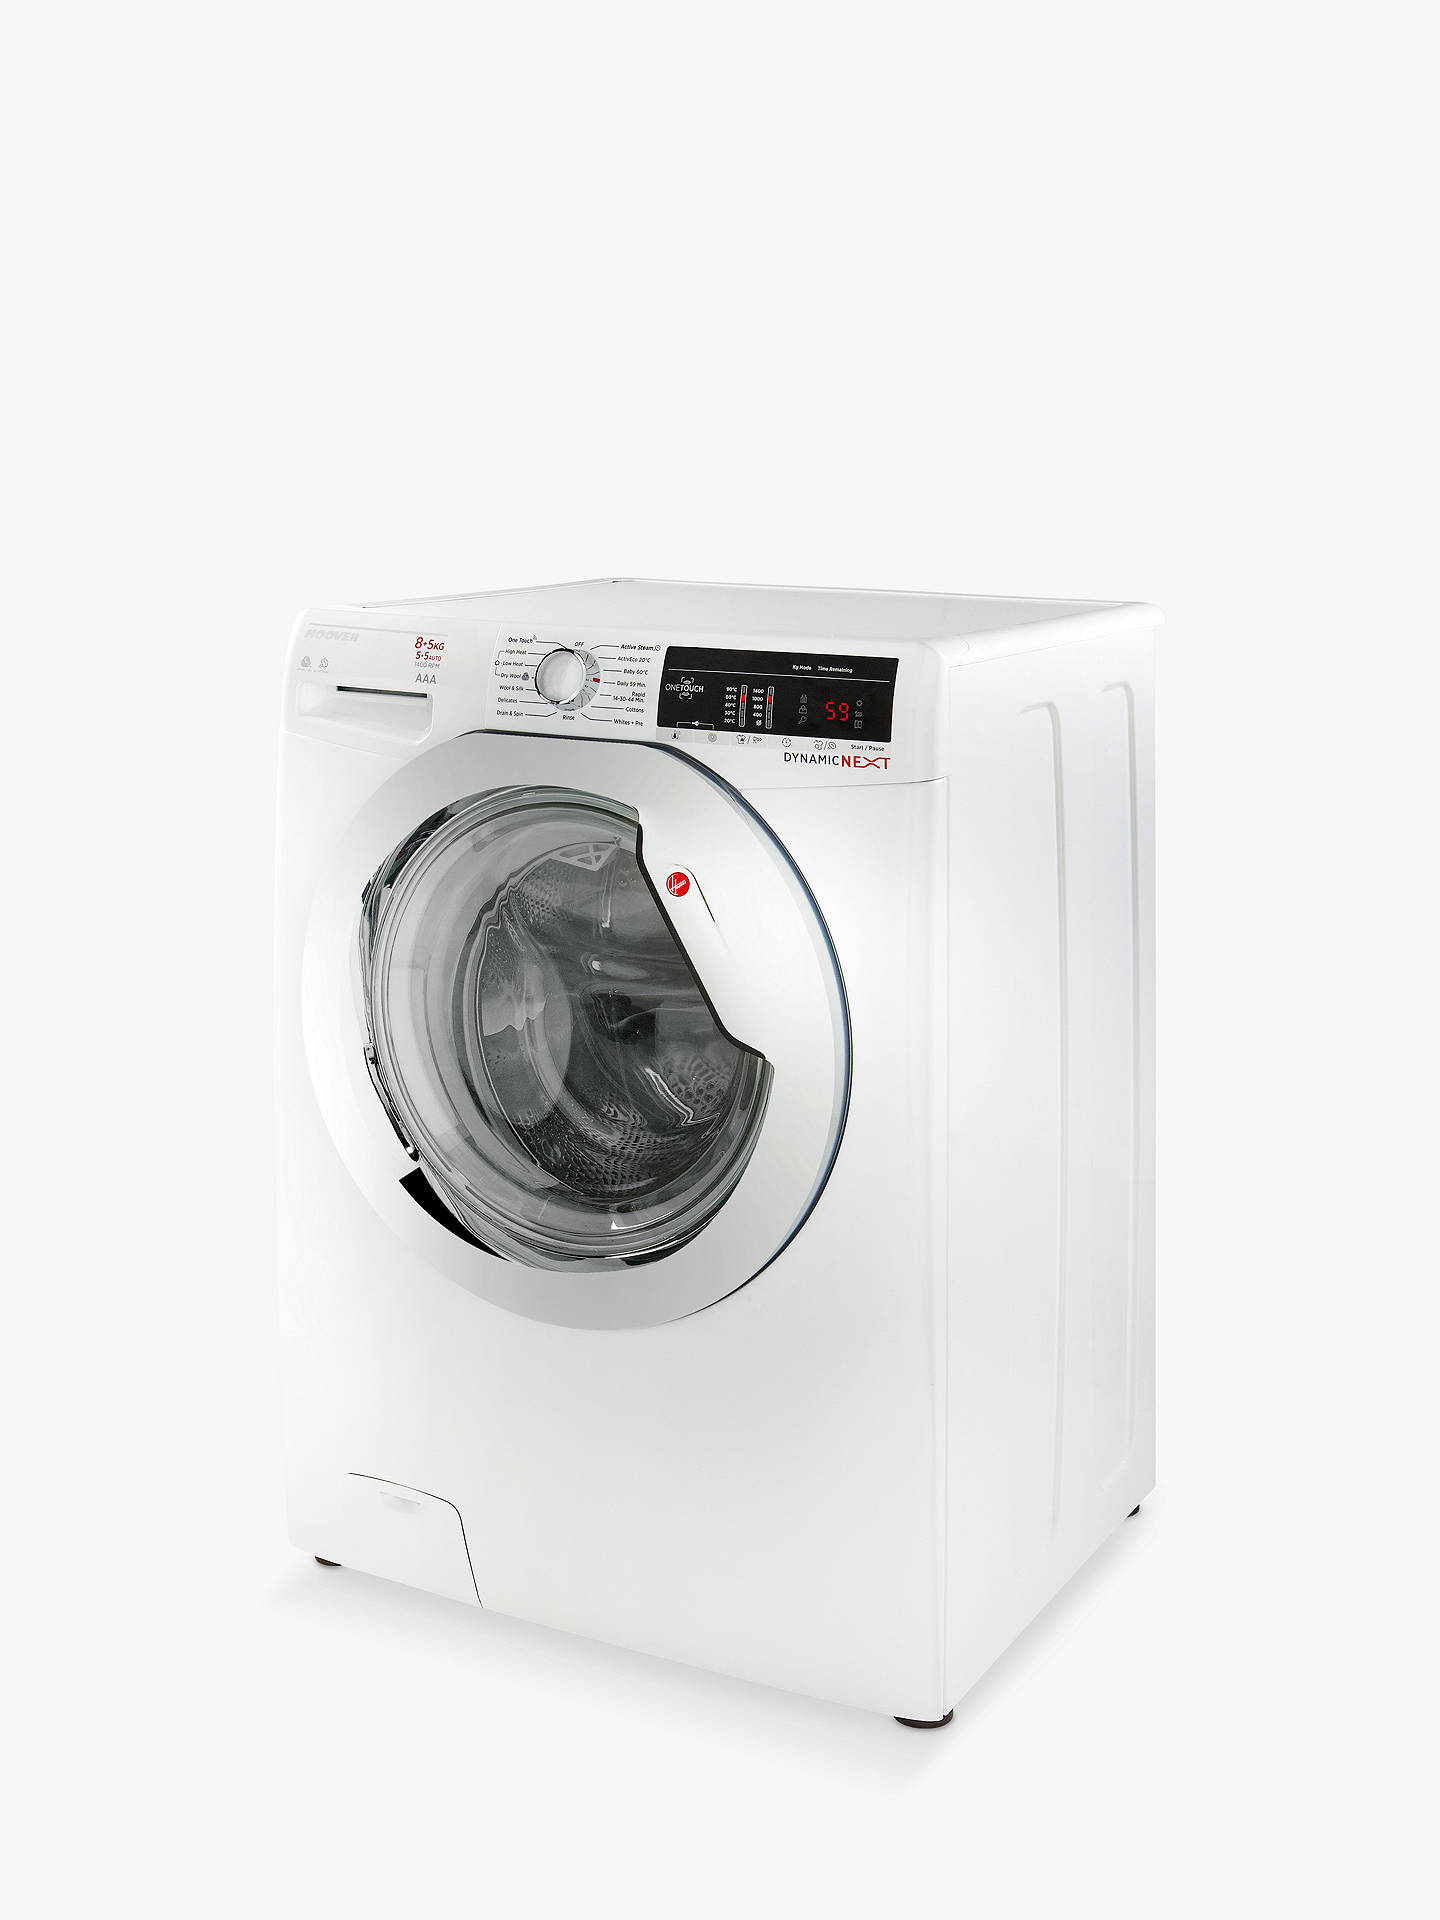 Buy Hoover Dynamic Next Advanced WDXOA 485C Freestanding Washer Dryer with NFC, 8kg Wash/5kg Dry Load, A Energy Rating, 1400rpm Spin, White Online at johnlewis.com